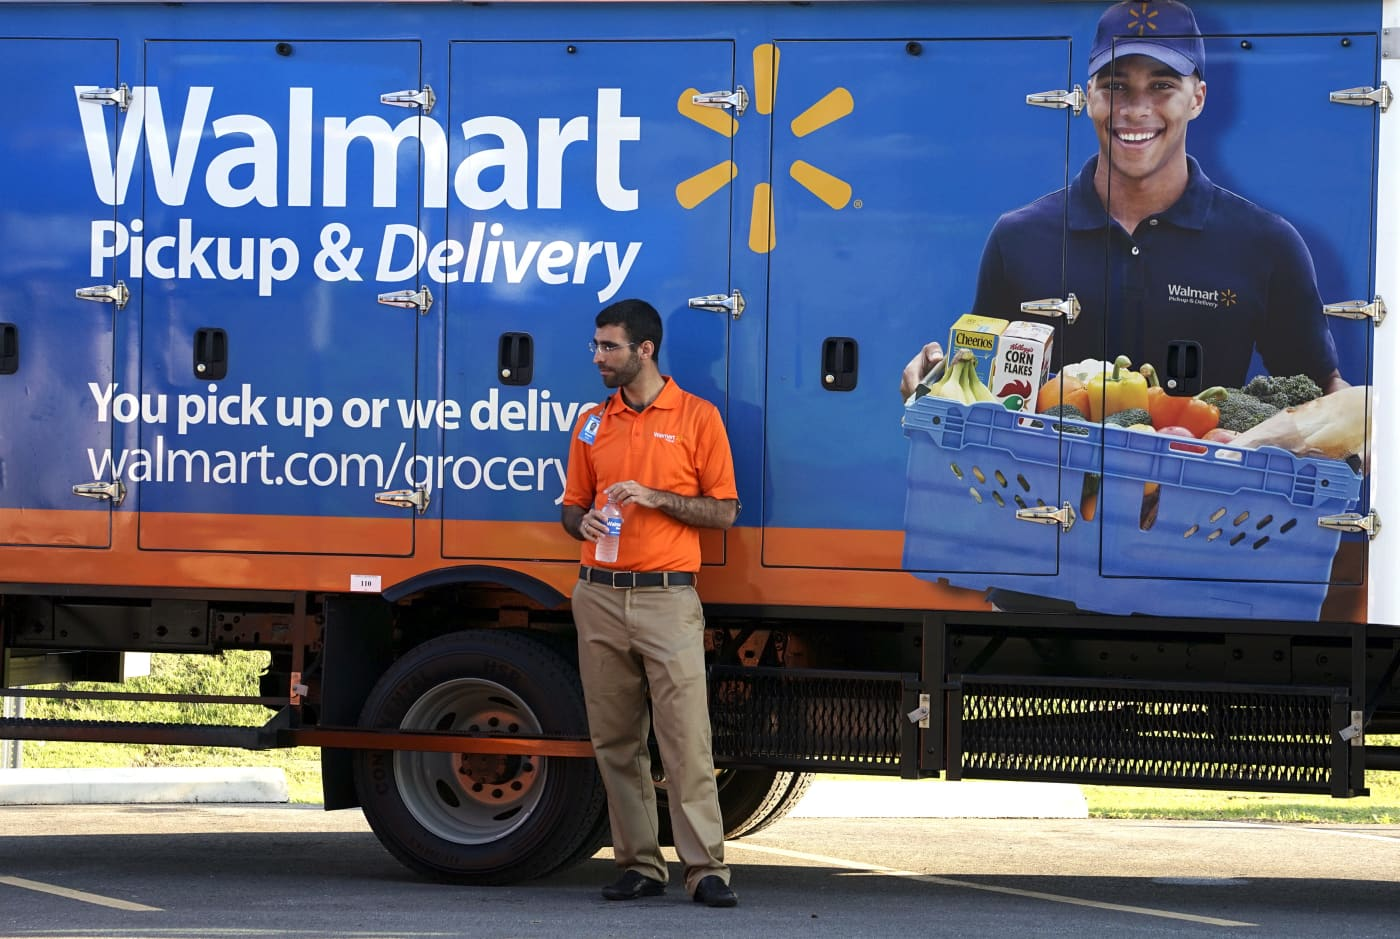 RT: Walmart grocery delivery